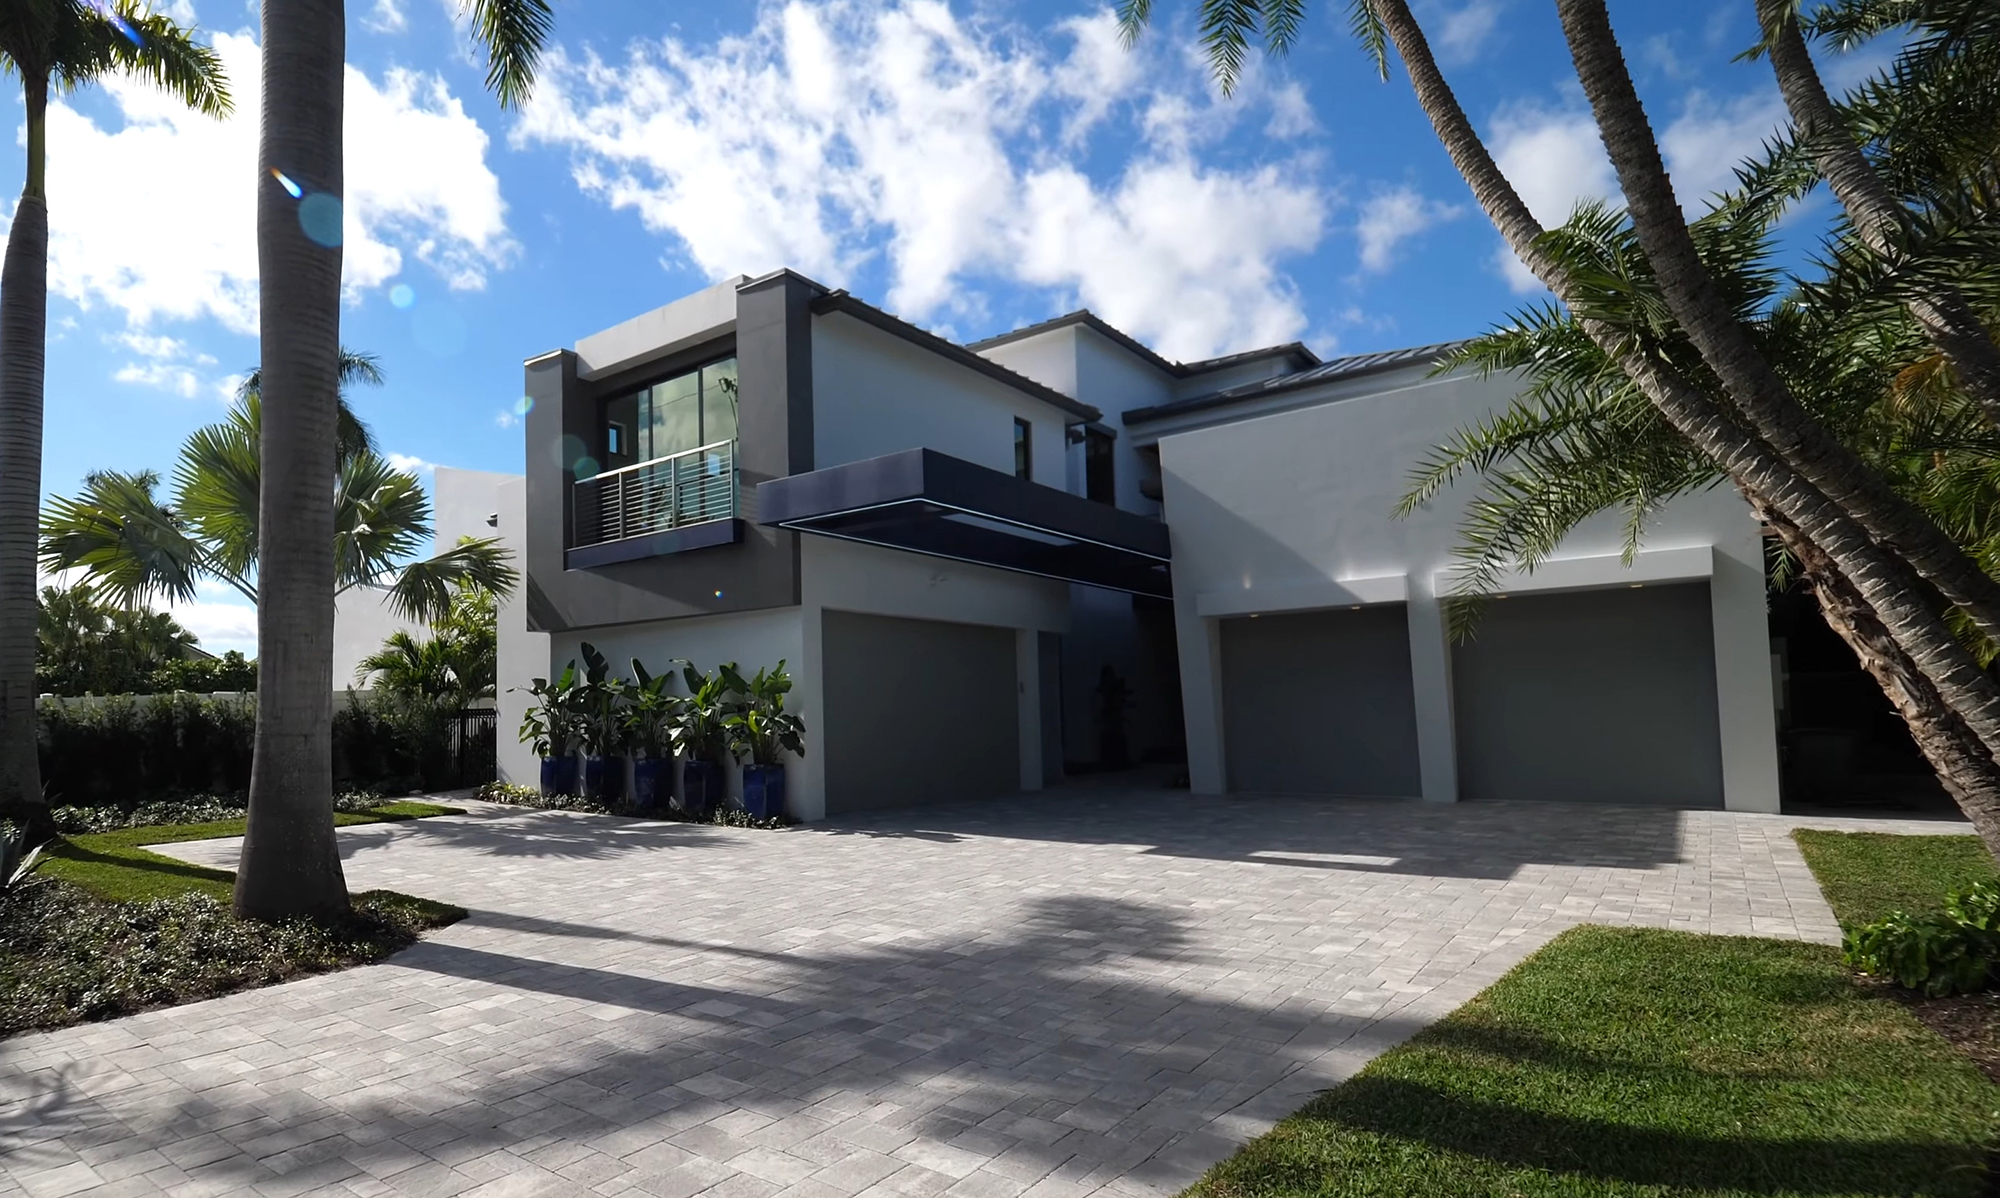 All gray custom home with a modern style and flat roof. Gray paver driveway.